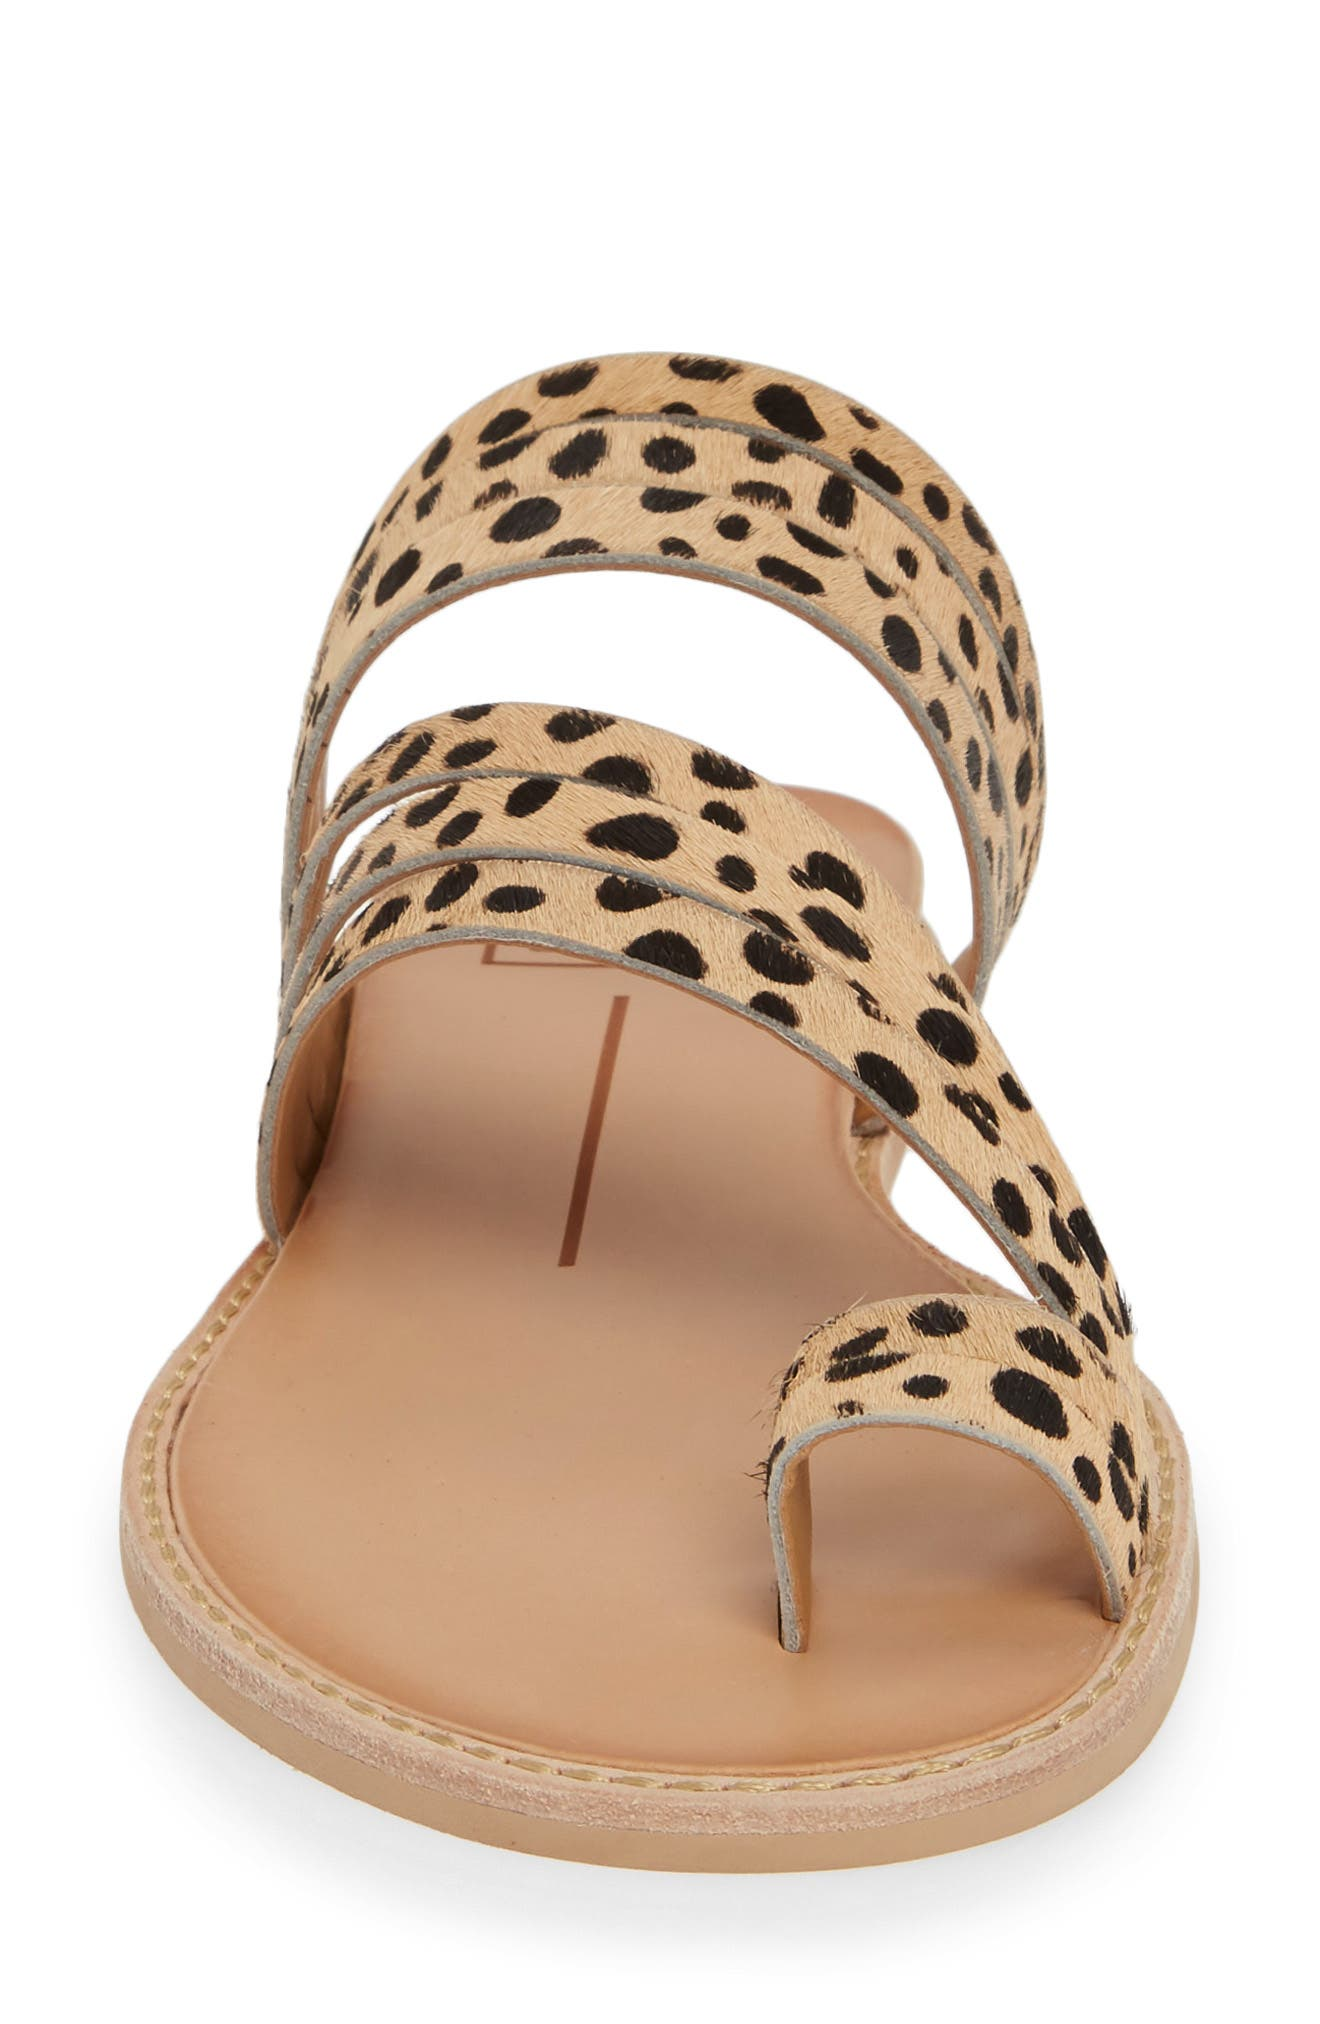 DOLCE VITA, Nelly Slide Sandal, Alternate thumbnail 4, color, LEOPARD CALF HAIR